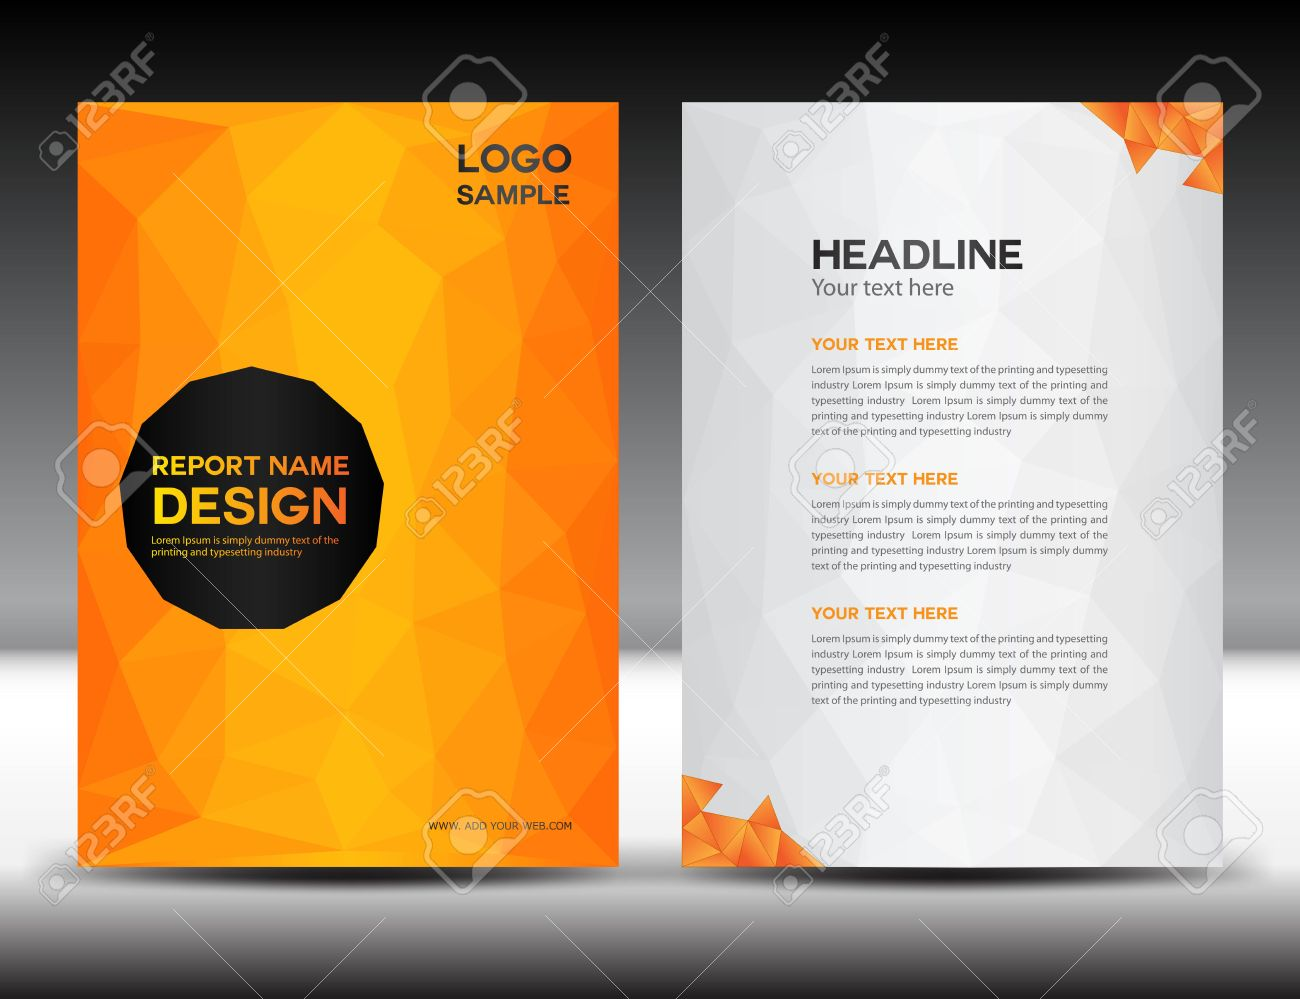 orange cover annual report template polygon background brochure orange cover annual report template polygon background brochure design cover template flyer